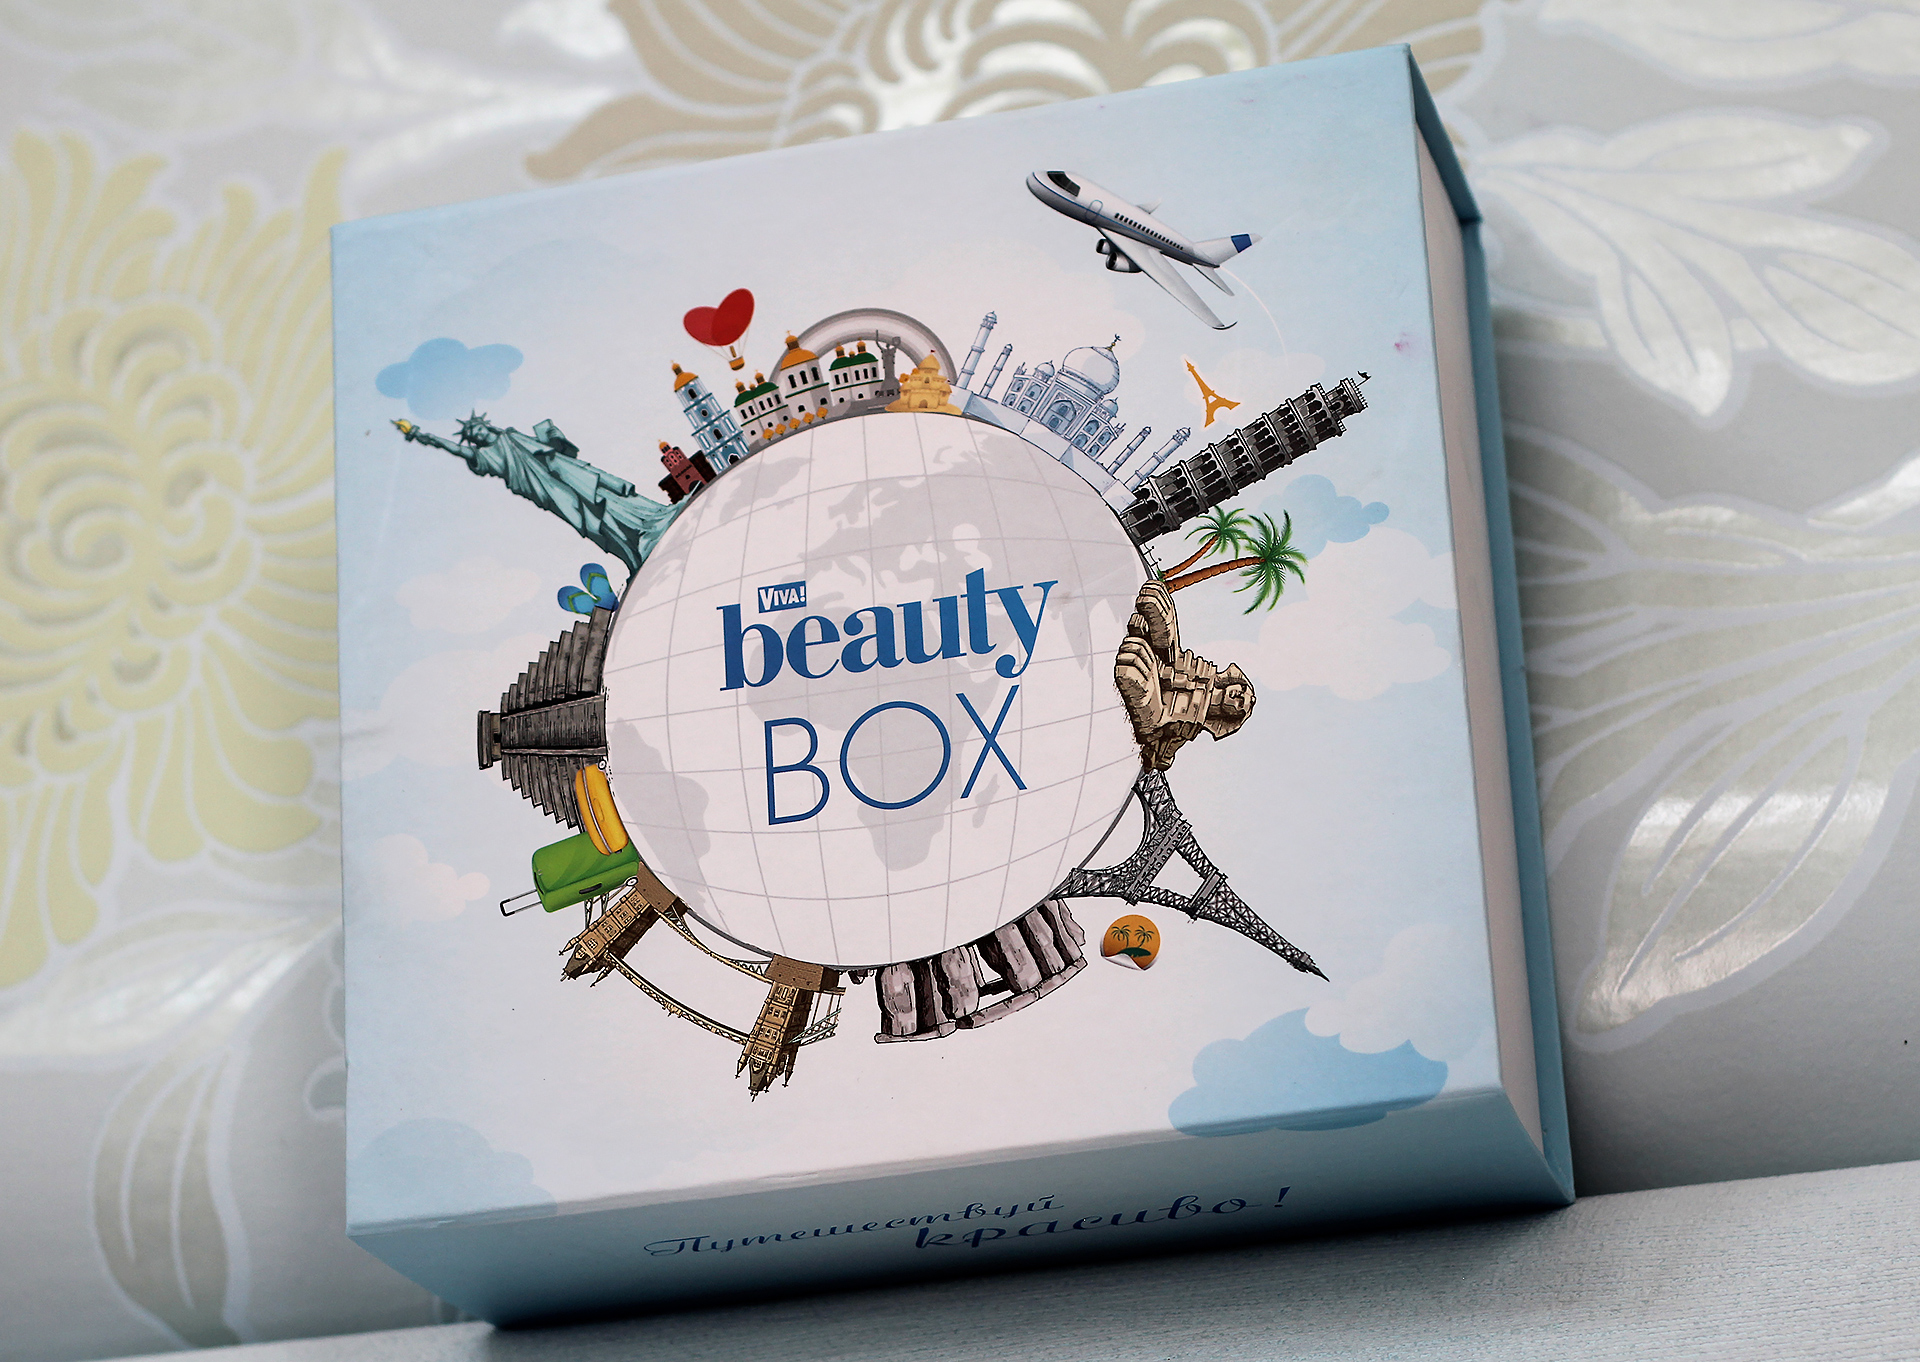 Viva! beauty BOX Travel